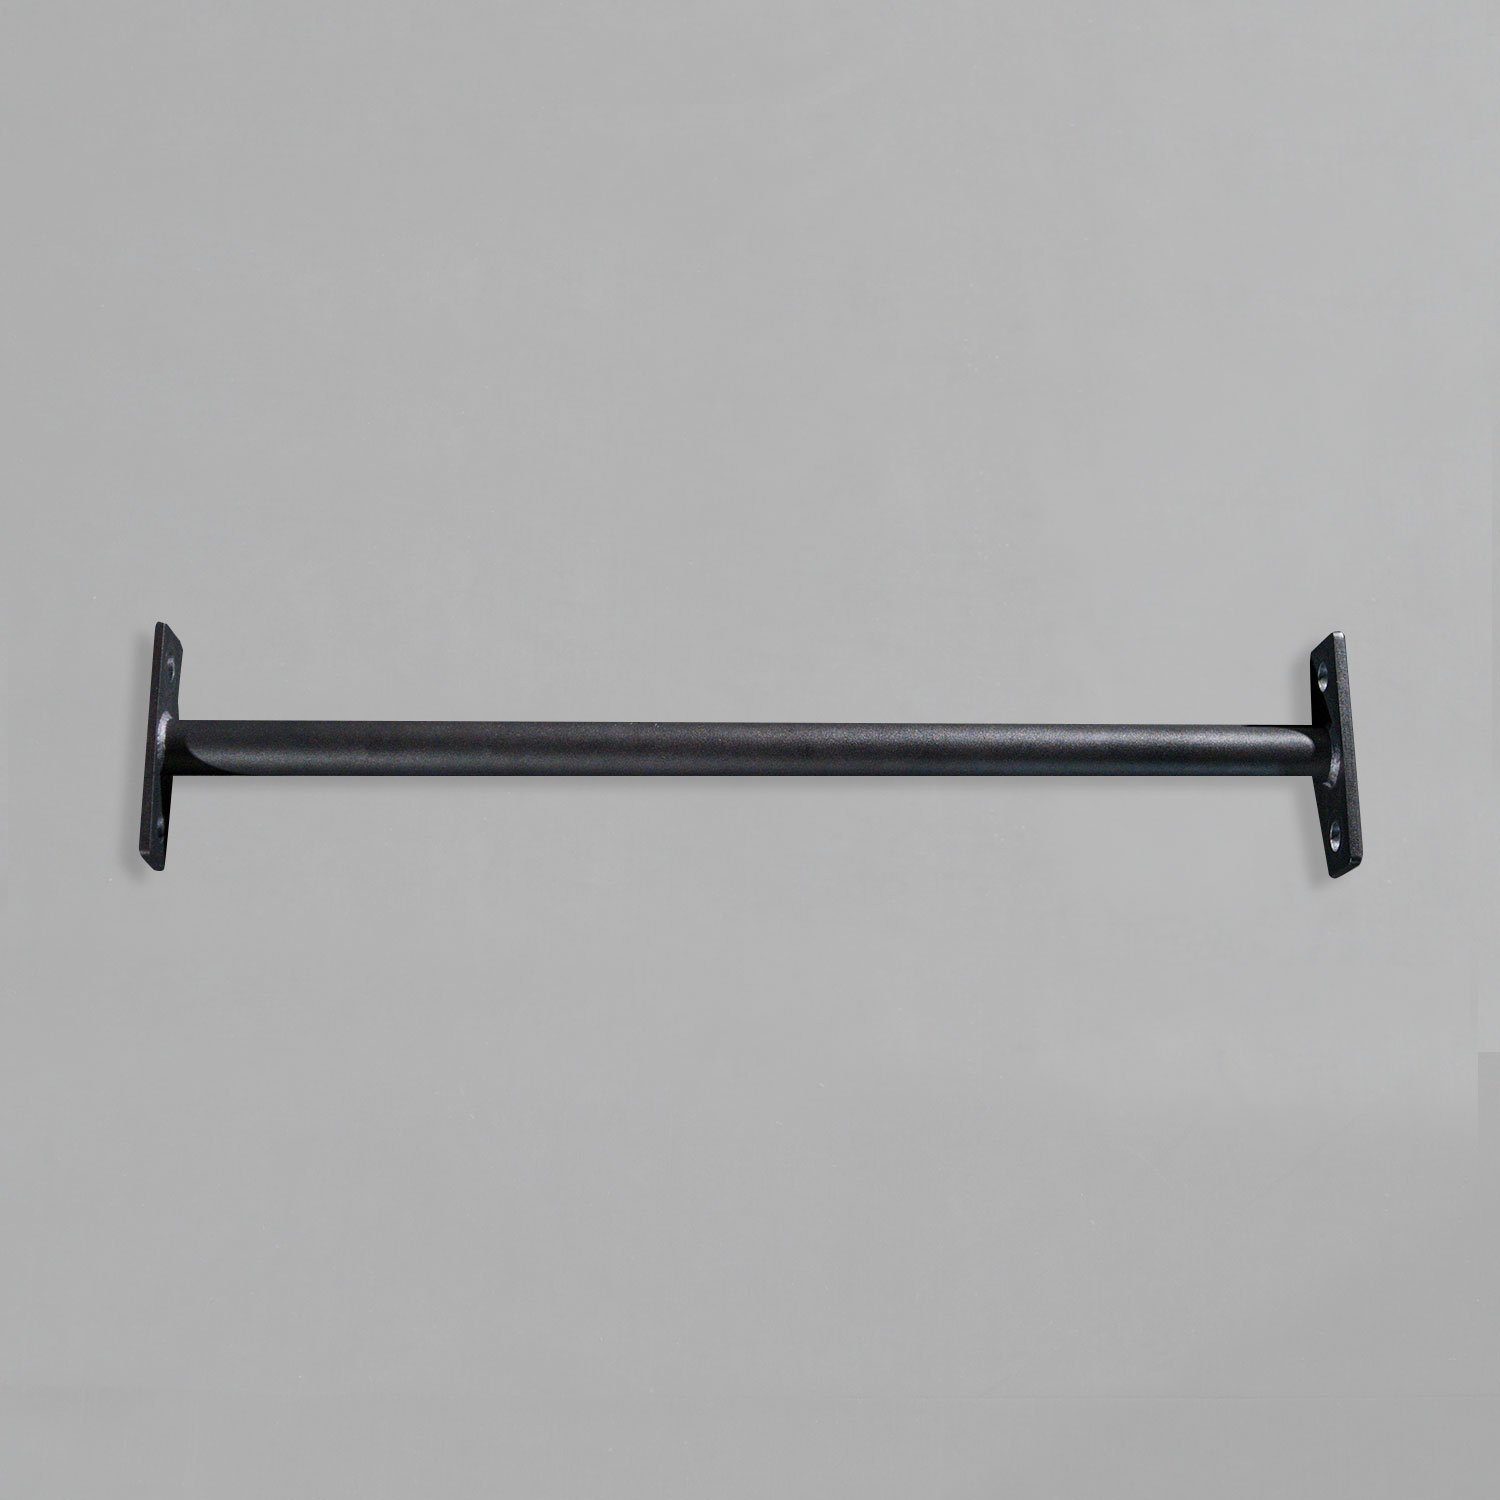 2-in Fat Pull Up Bar